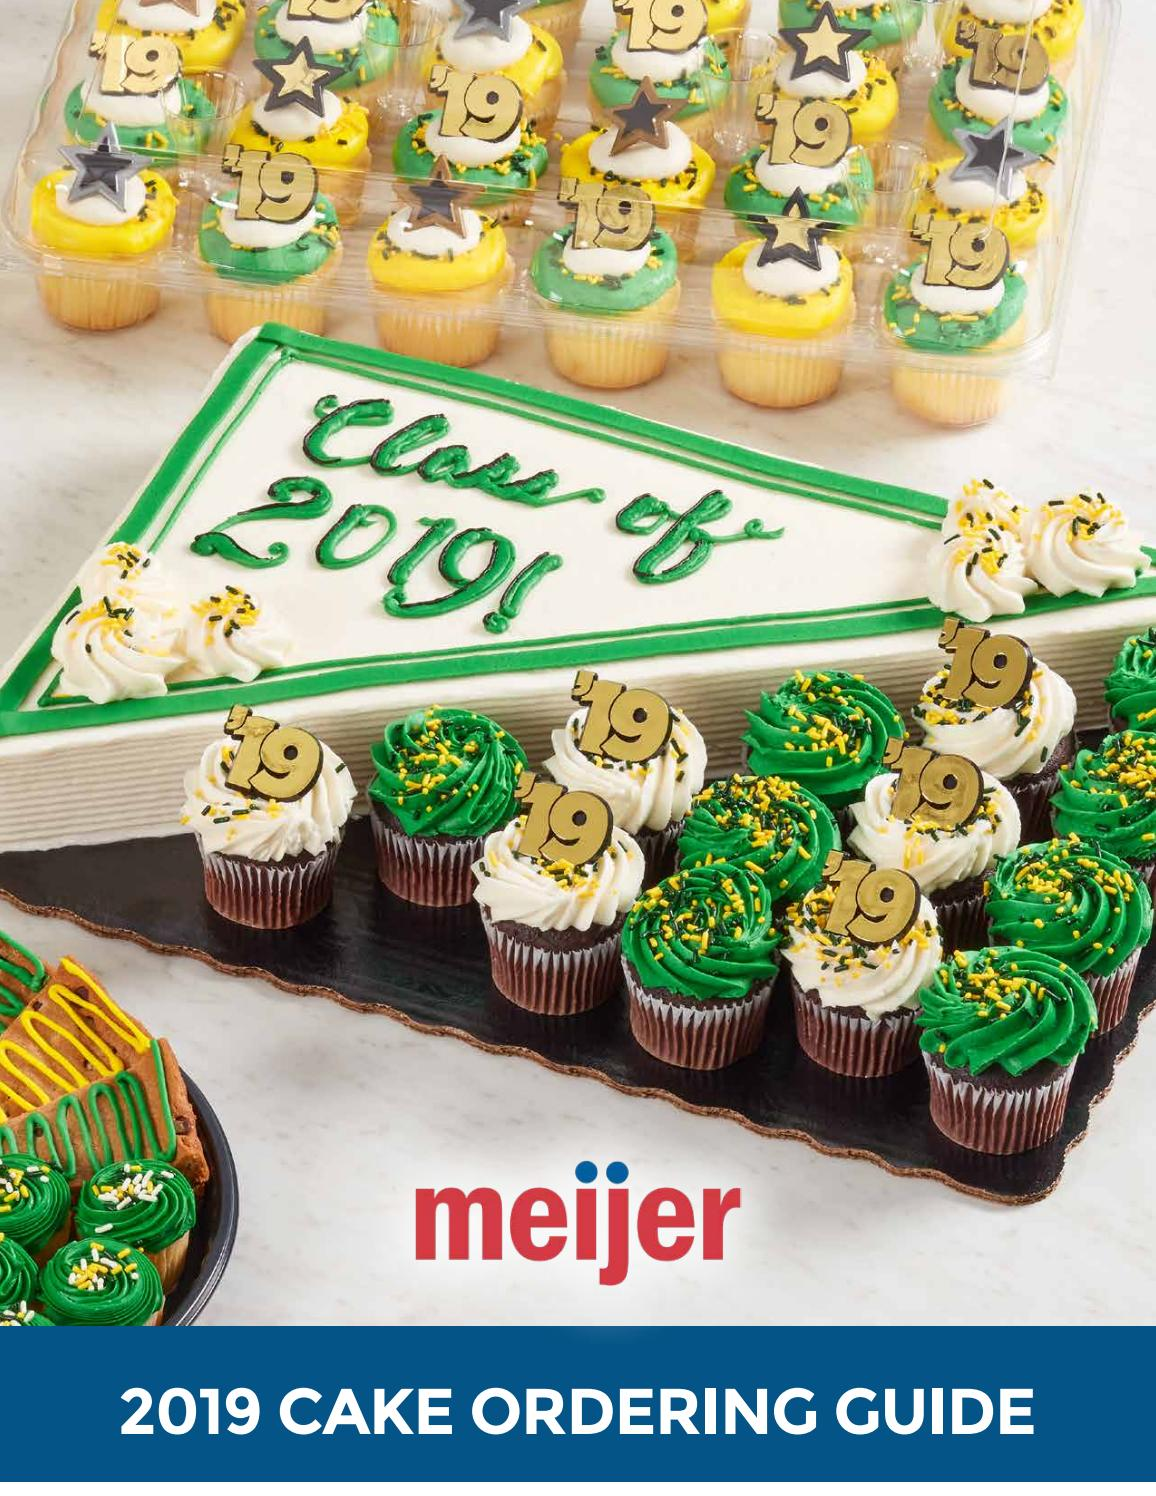 Pleasant 2019 Meijer Cake Ordering Guide By Decopac Issuu Funny Birthday Cards Online Inifodamsfinfo